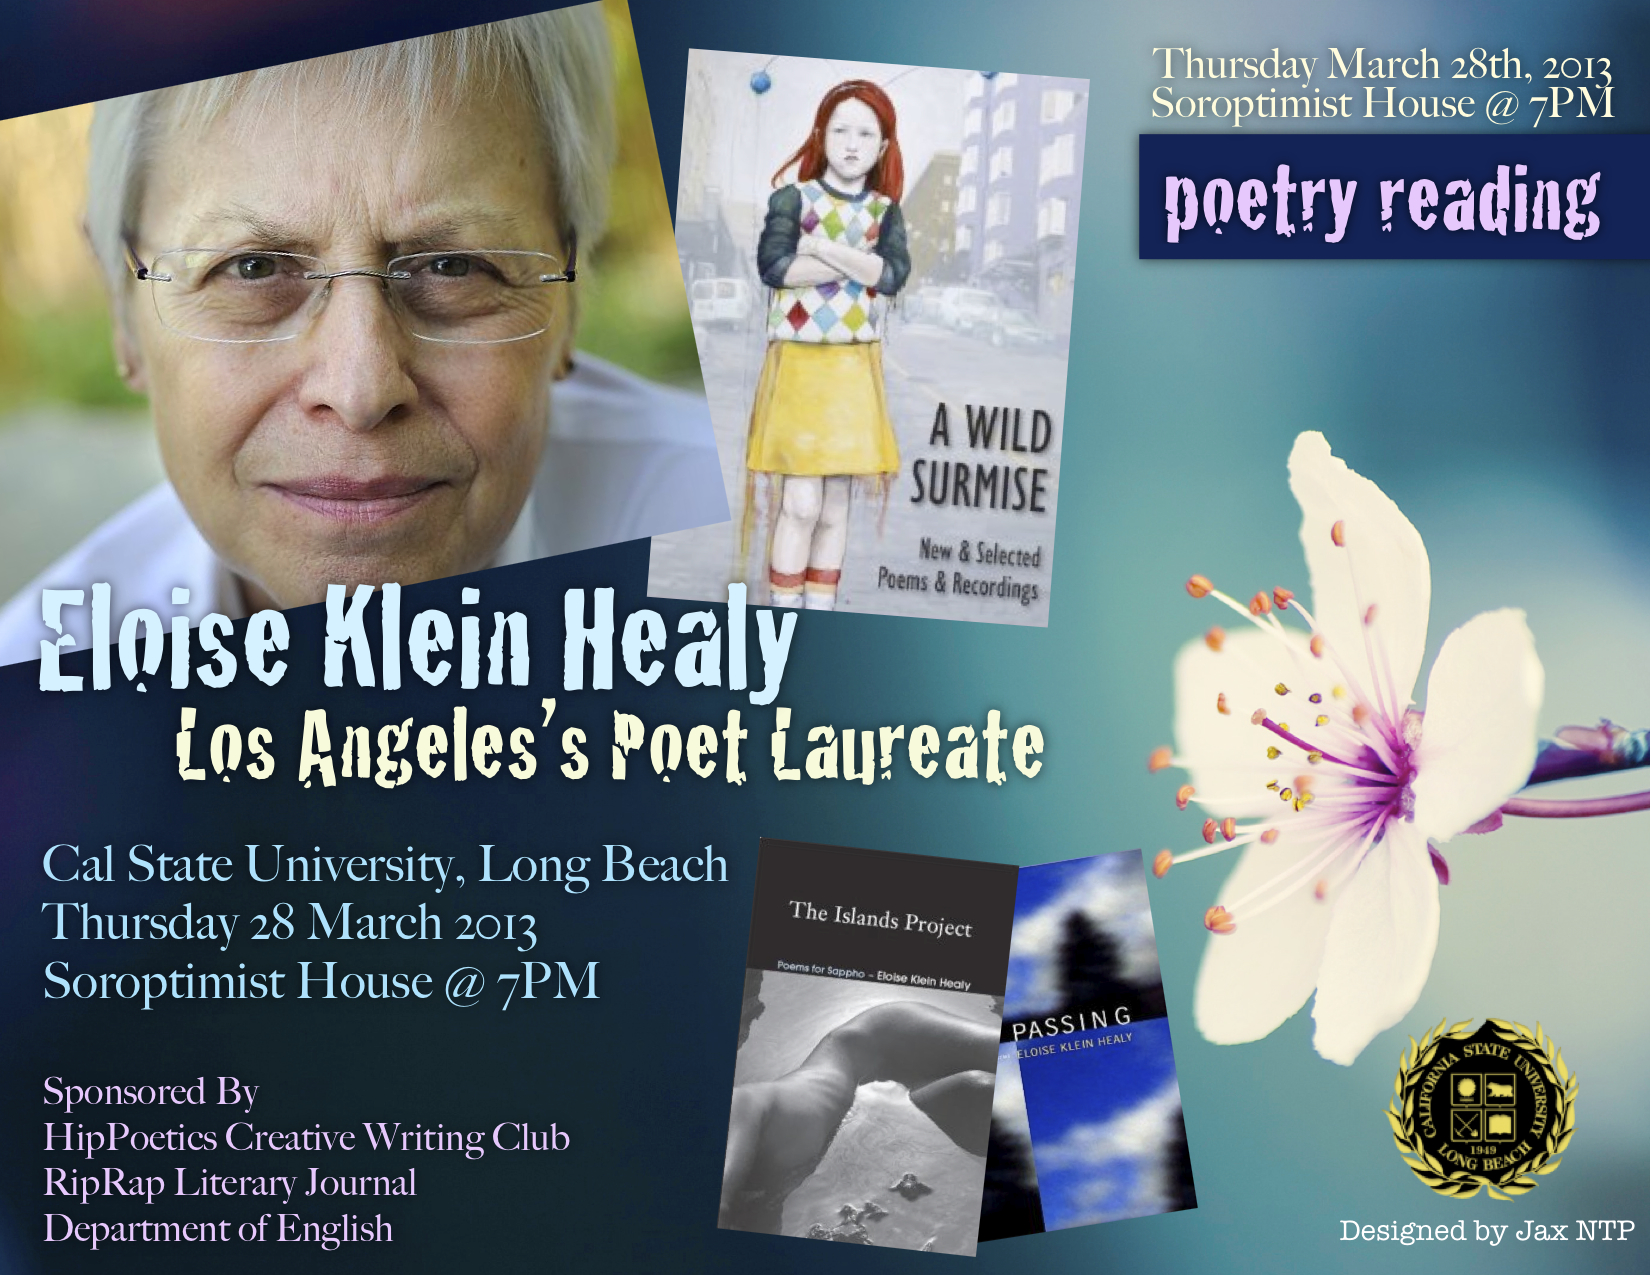 Eloise Klein Healy Poetry Reading